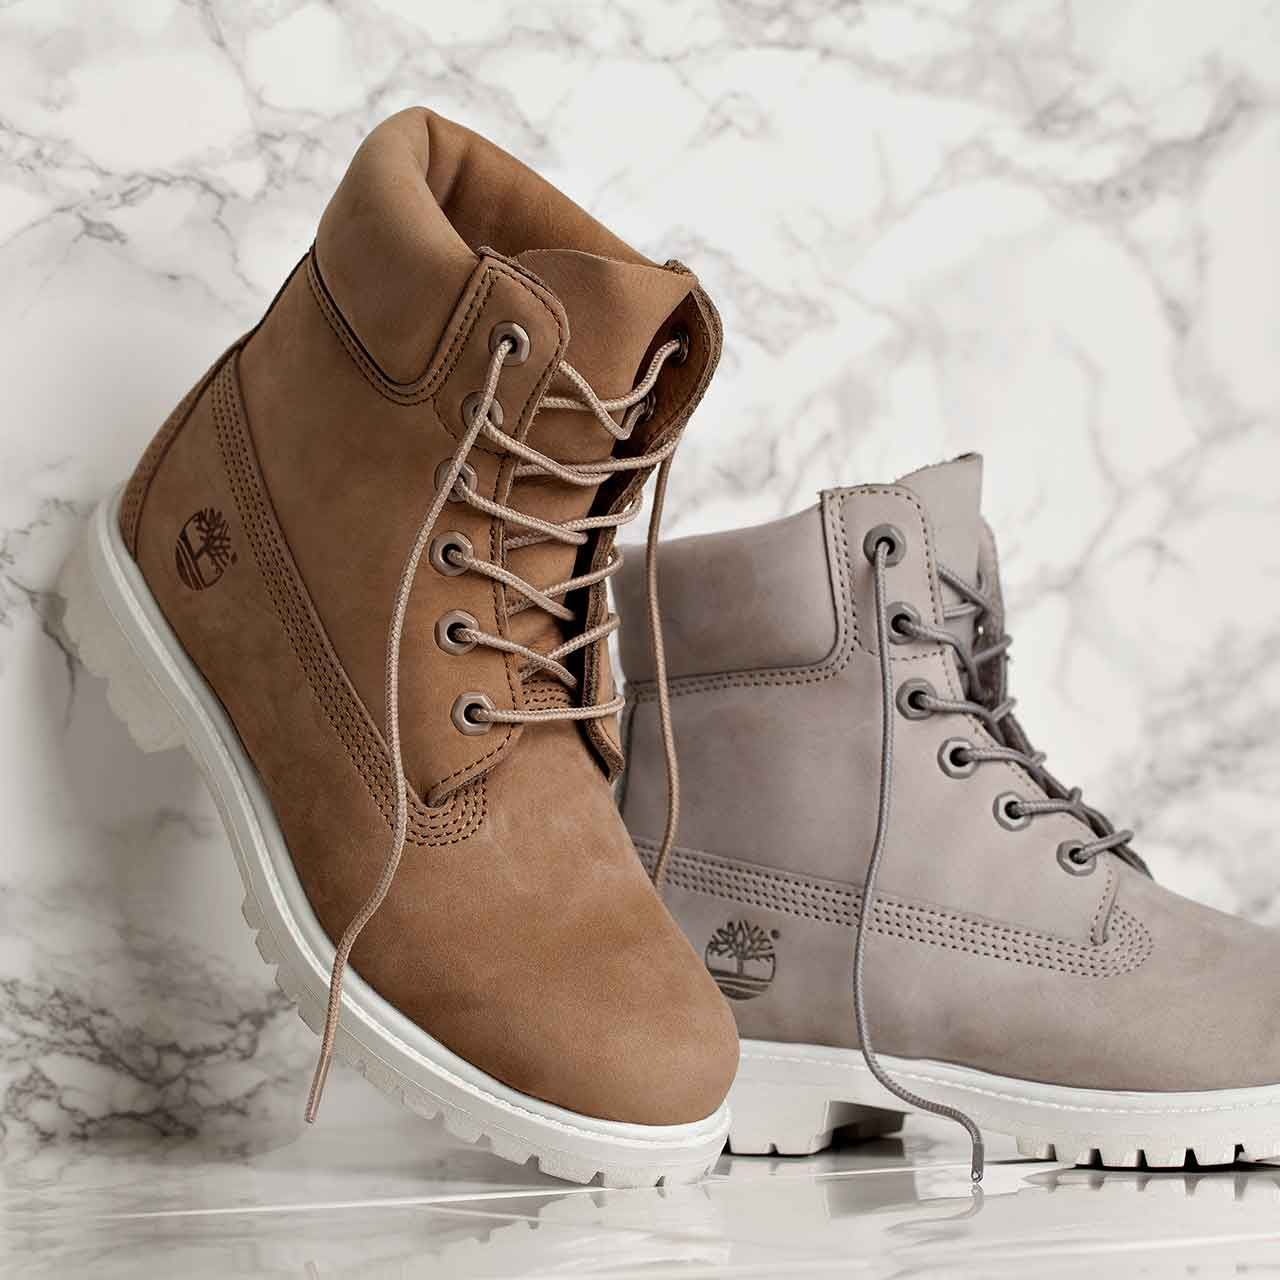 370c1ff60d0 Meet the Footasylum Exclusive Womens Timberland 6 Inch Premium Boot in Bone  & Light Grey! Available now online & in store.